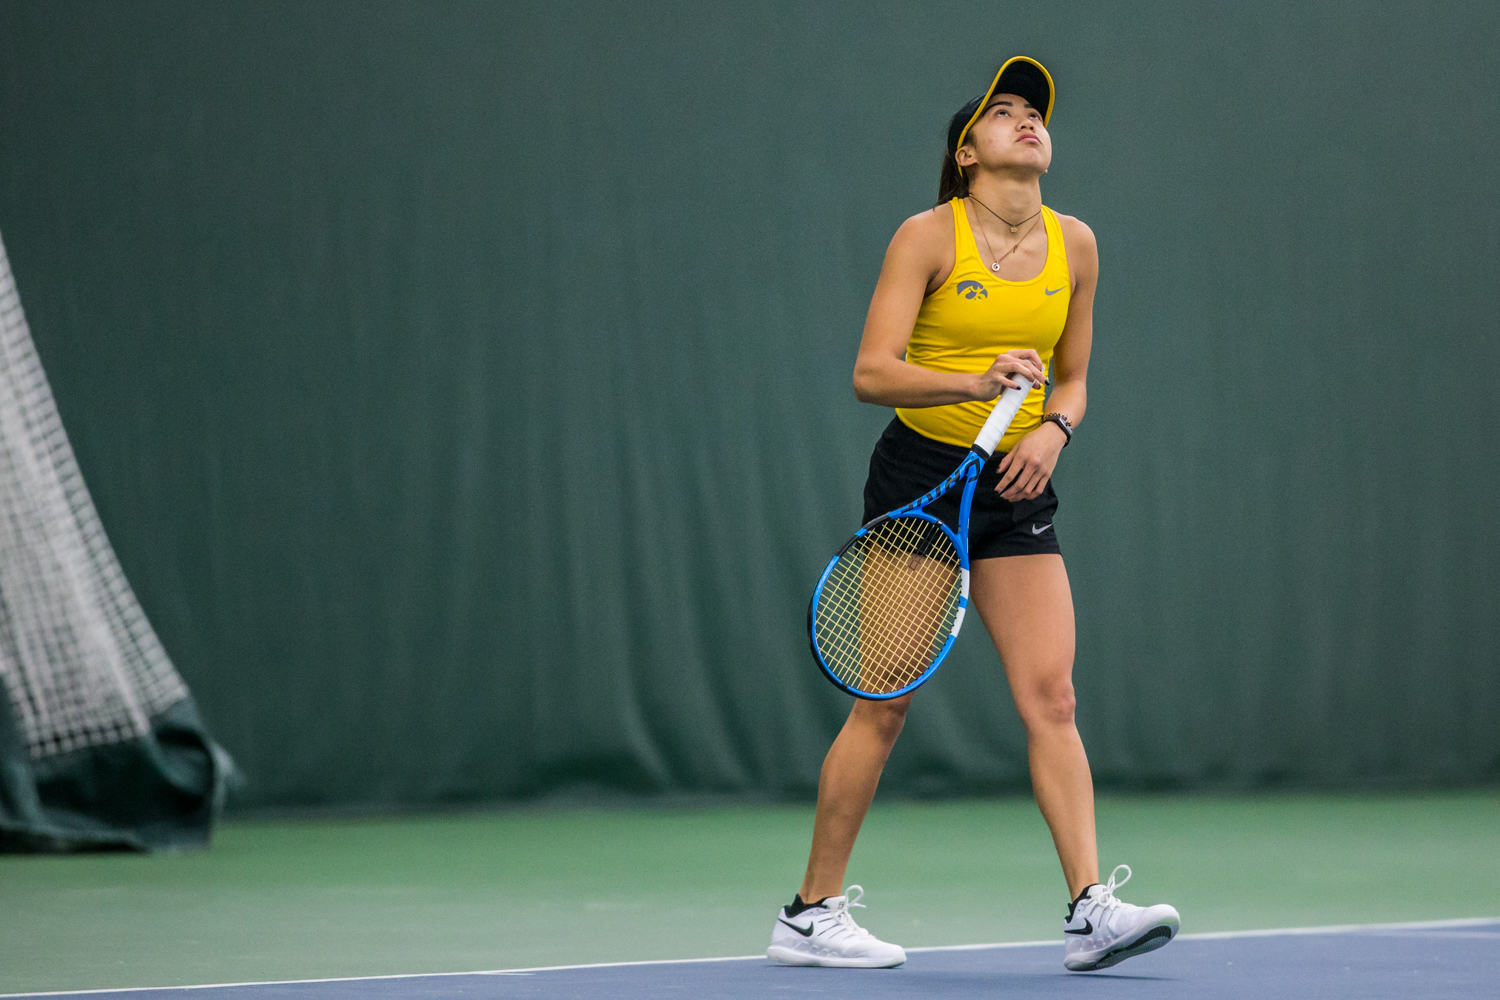 Iowa%27s+Michelle+Bacalla+reacts+during+a+women%27s+tennis+matchup+between+Iowa+and+Iowa+State+at+the+Hawkeye+Tennis+and+Recreation+Complex+on+Friday%2C+February+8%2C+2019.++The+Hawkeyes+dropped+the+doubles+point+but+swept+singles+matches%2C+defeating+the+Cyclones+4-1.